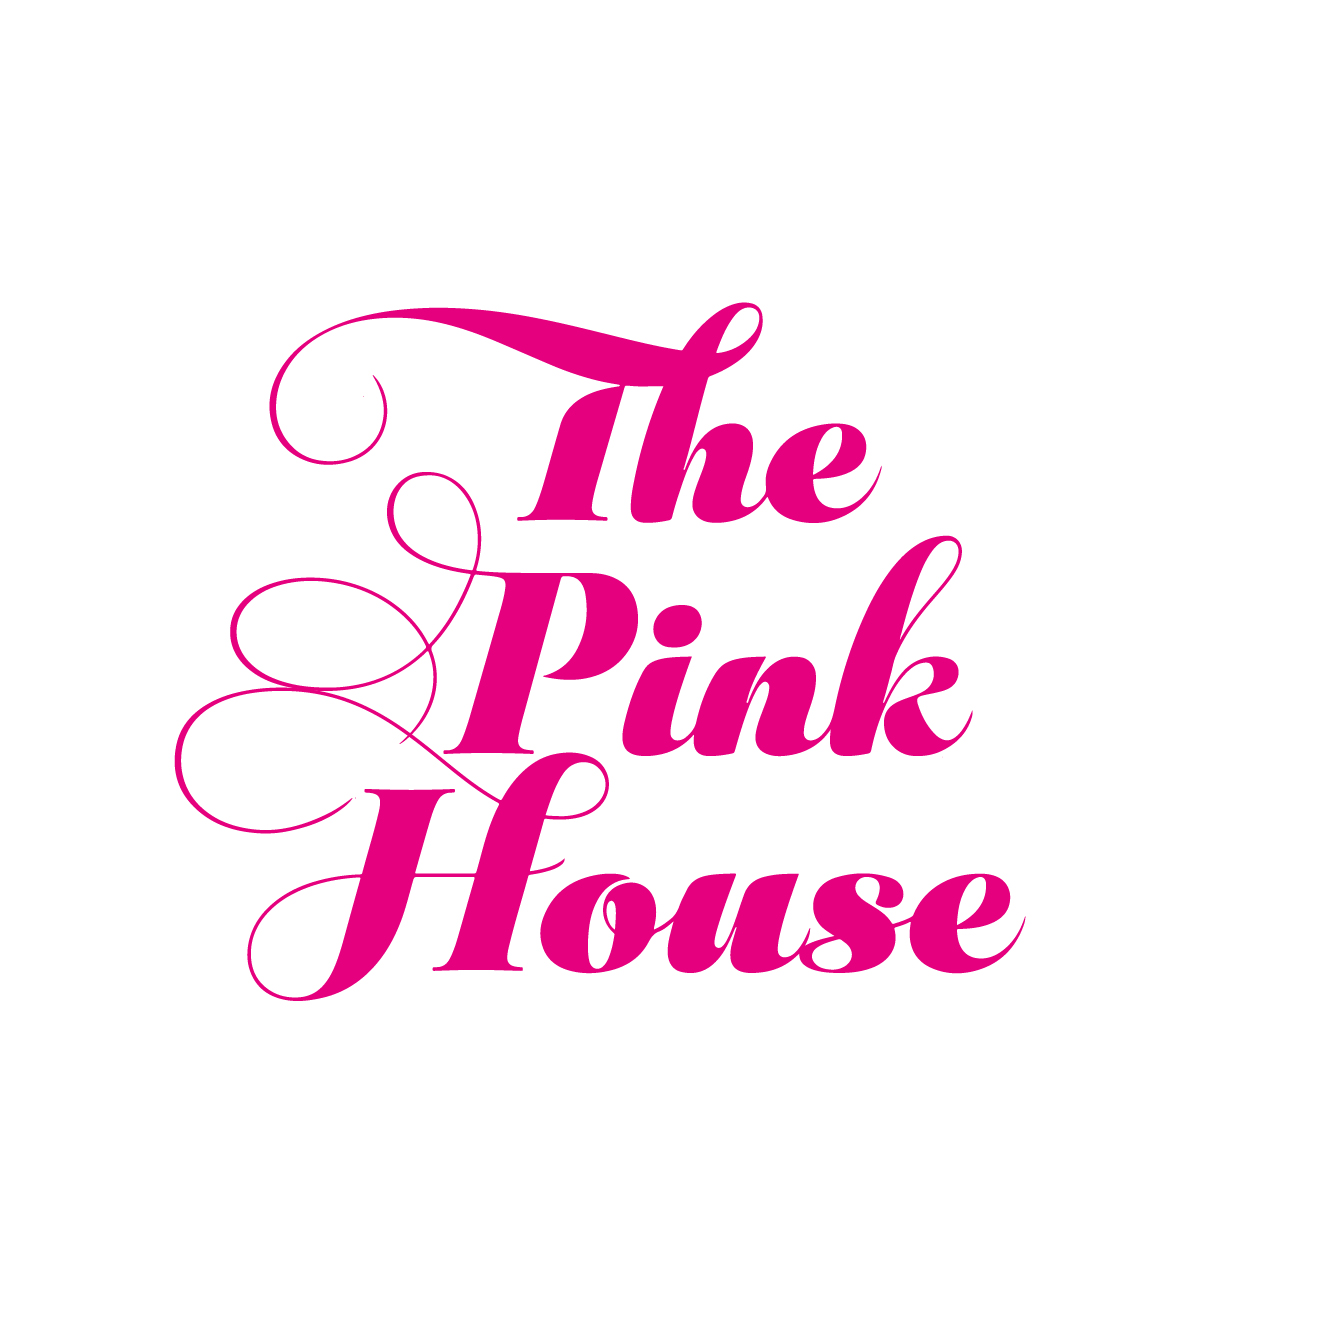 Pink house clothing brand